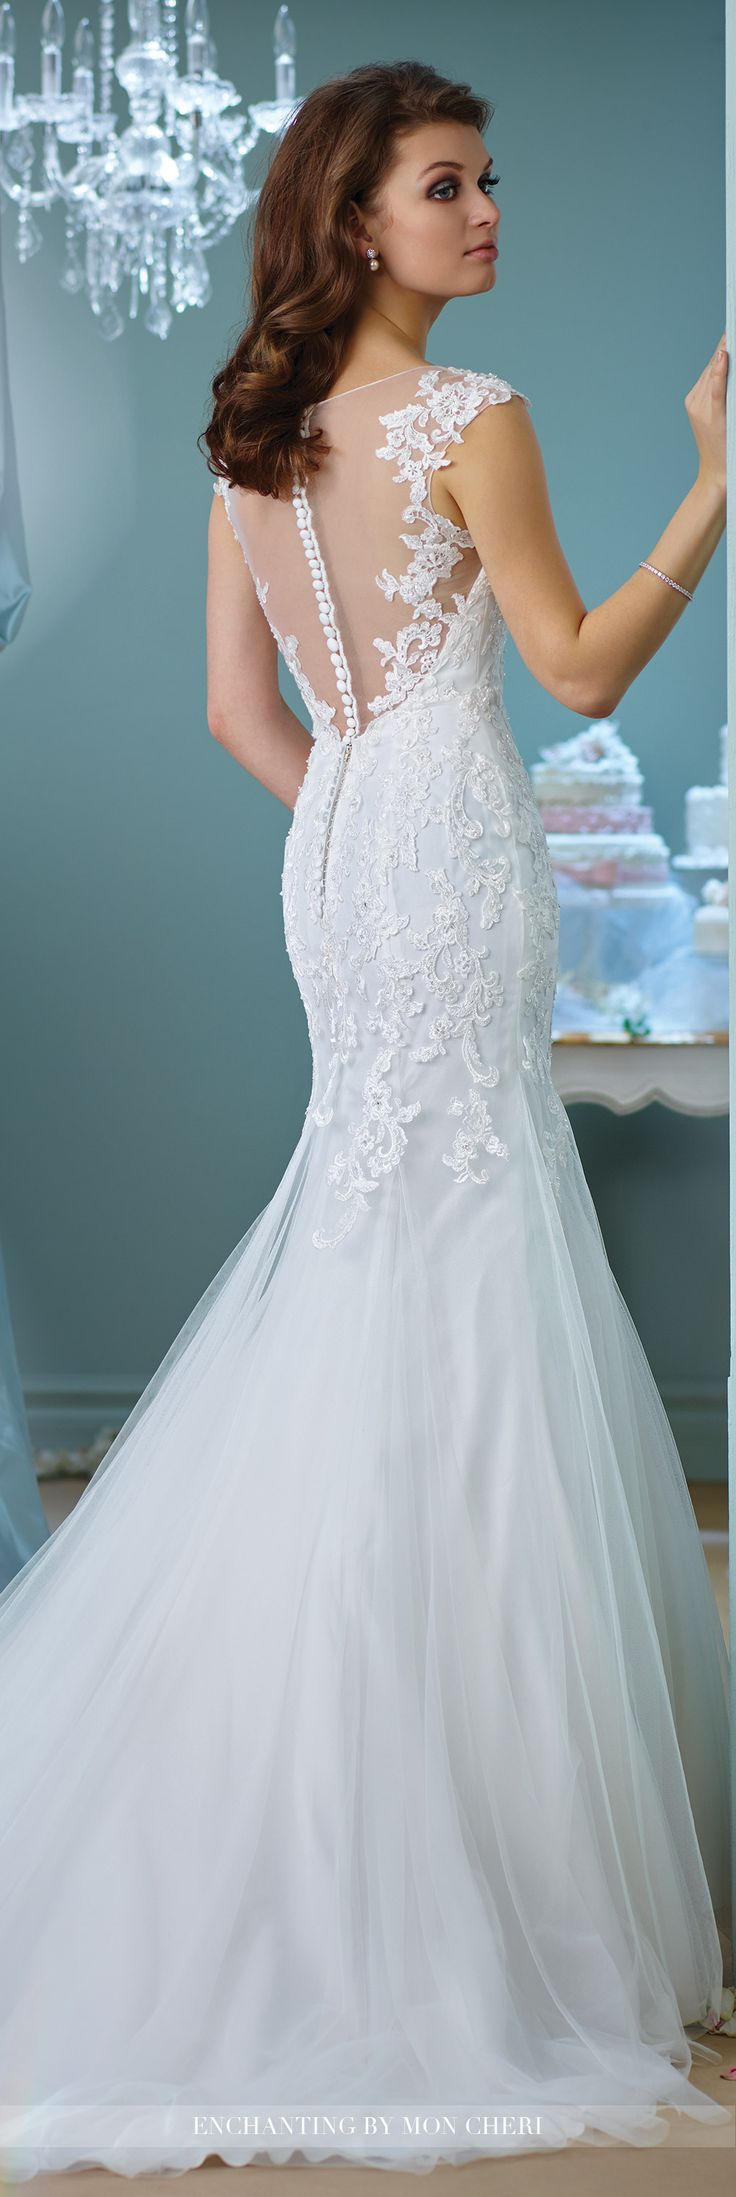 Nice bridal gowns illusion back wedding dress check more at